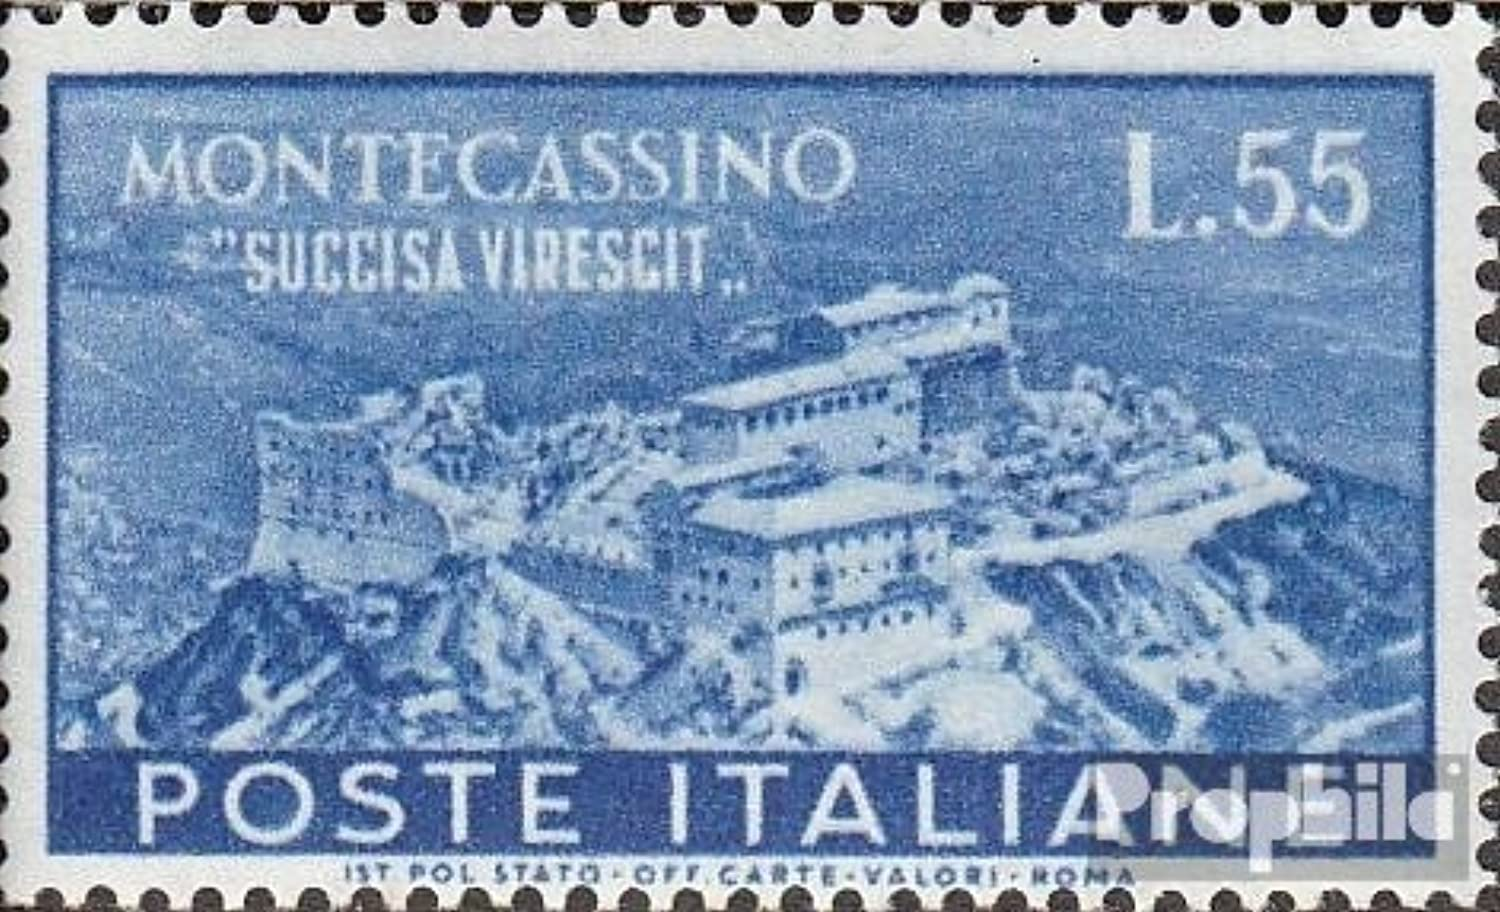 838 1951 Monte cassino (Stamps for collectors)